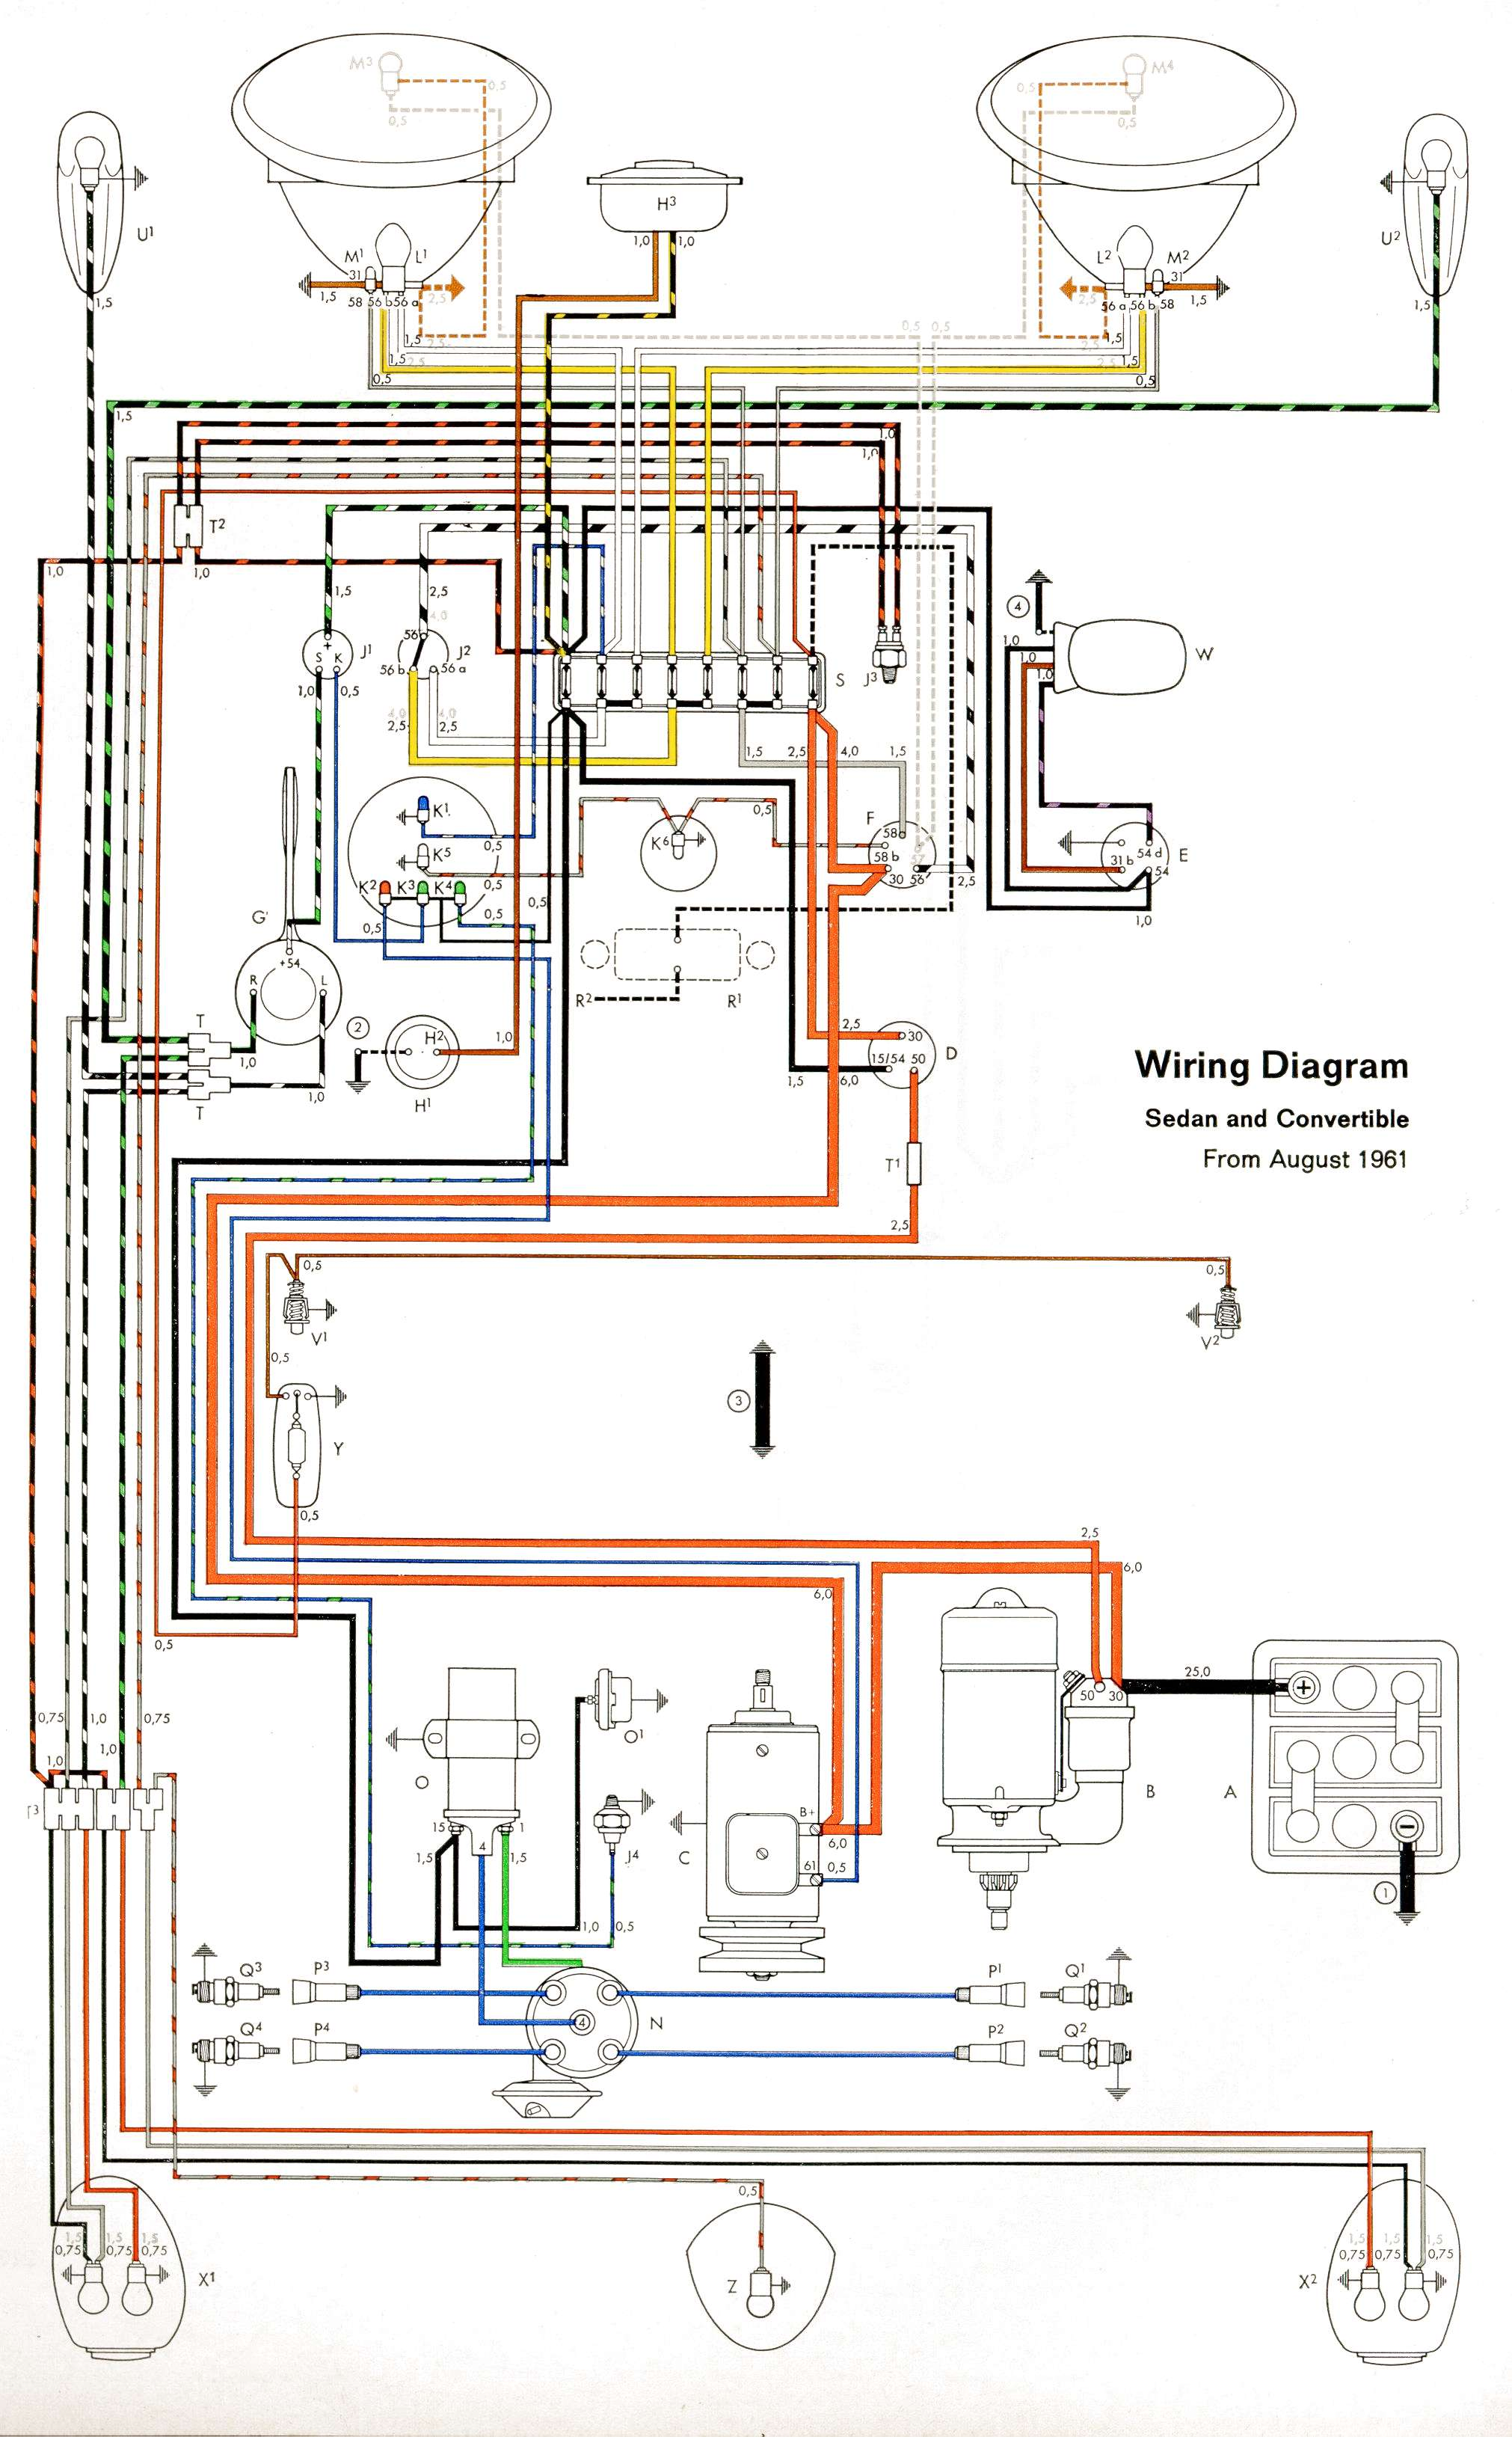 Email These Links Smartboard Wiring Diagram Turn Signal Troubleshooting Http Vintagebuscom Bug 62 65